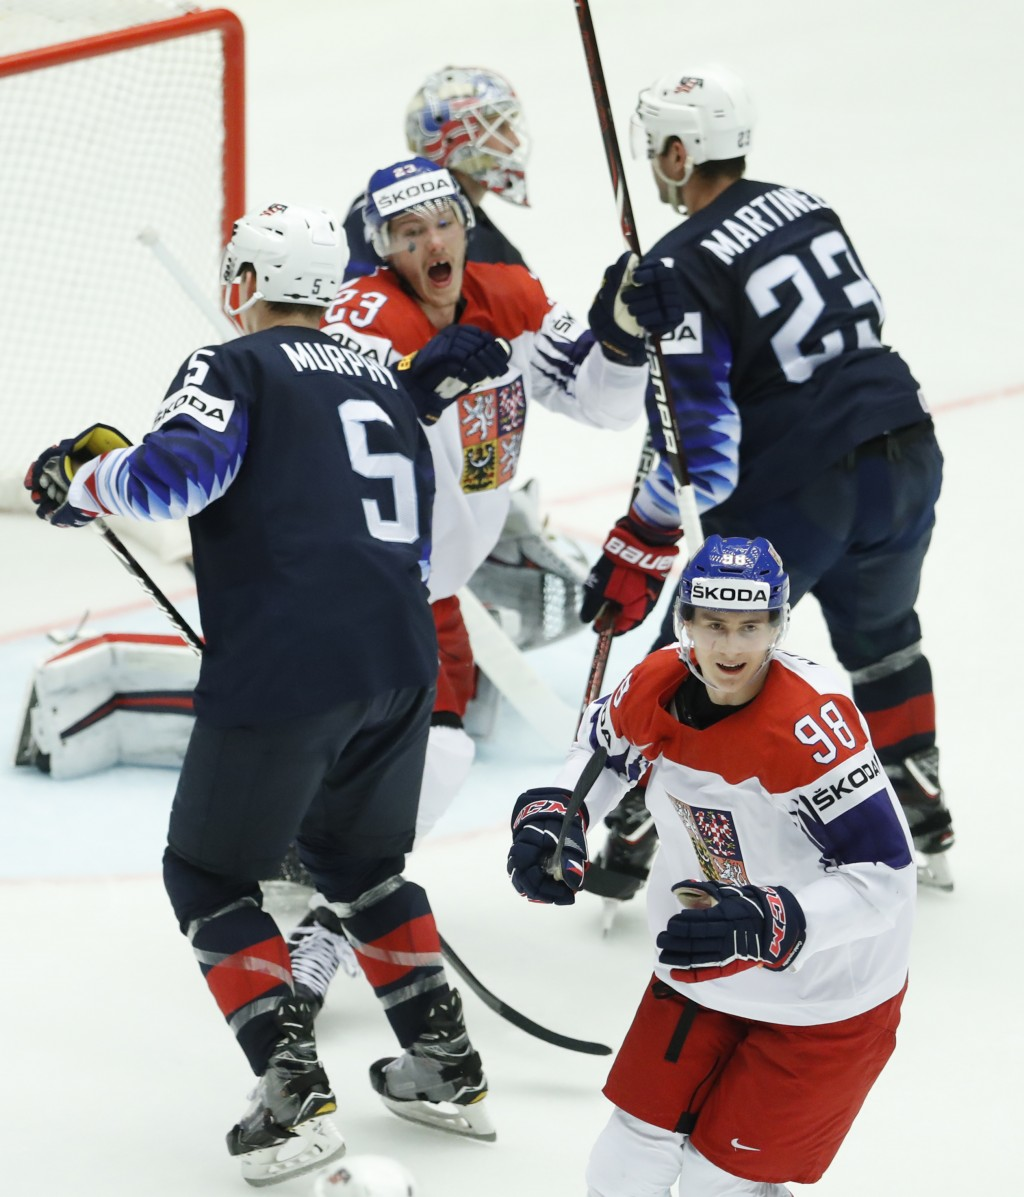 Czech Republic's Martin Necas, down, celebrates after scoring his sides second goal during the Ice Hockey World Championships quarterfinal match betwe